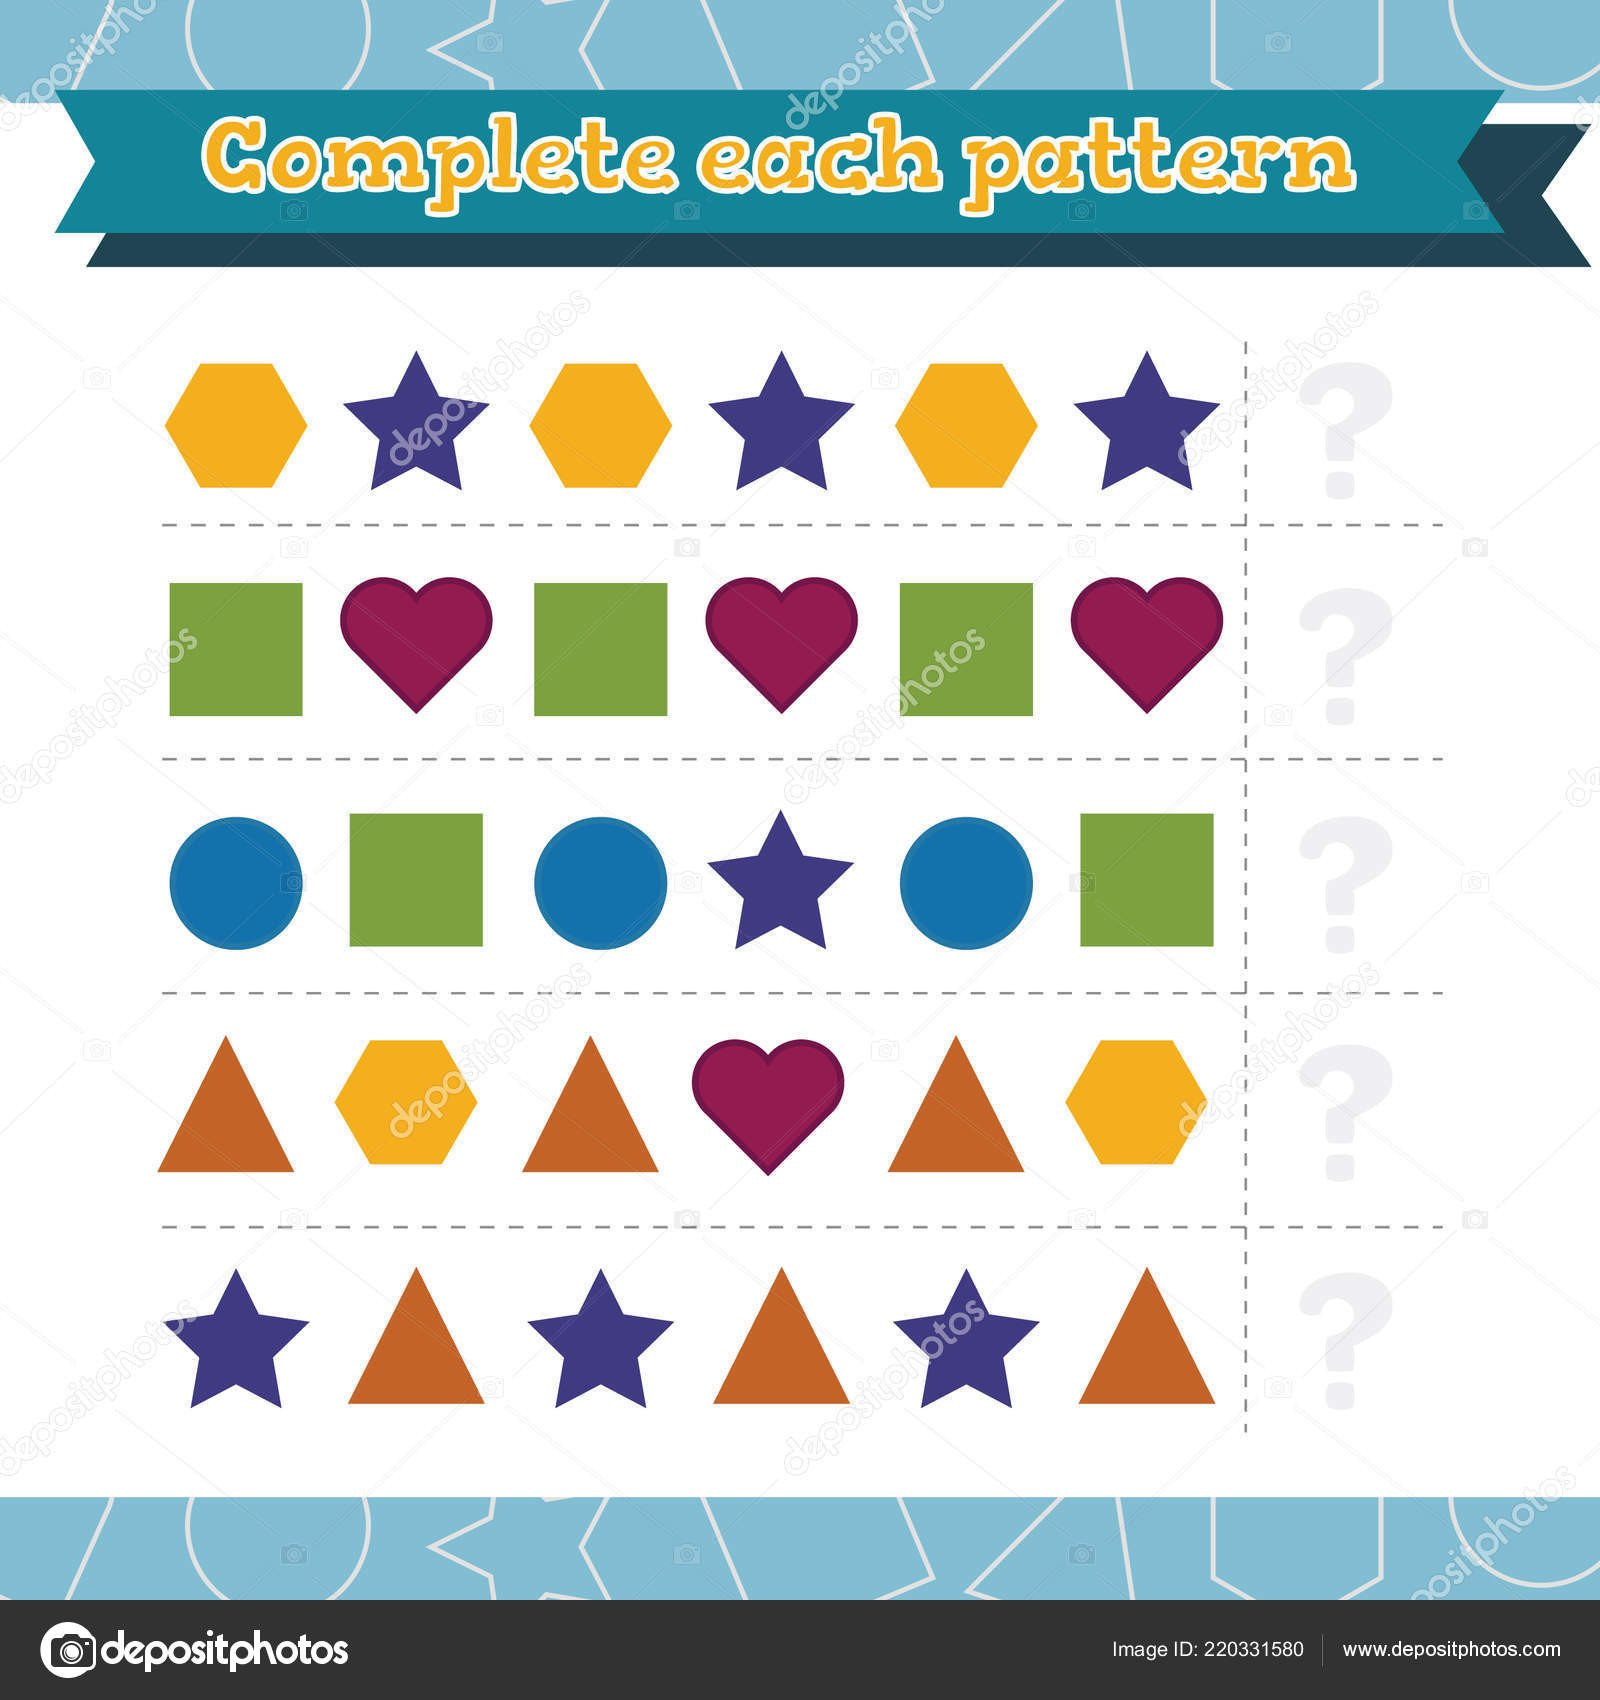 Geometric Shape Pattern Worksheets Game for Preschool Children Learn Shapes and Geometric Figures Plete Each Pattern Preschool or Kindergarten Worksheet Vector Illustration